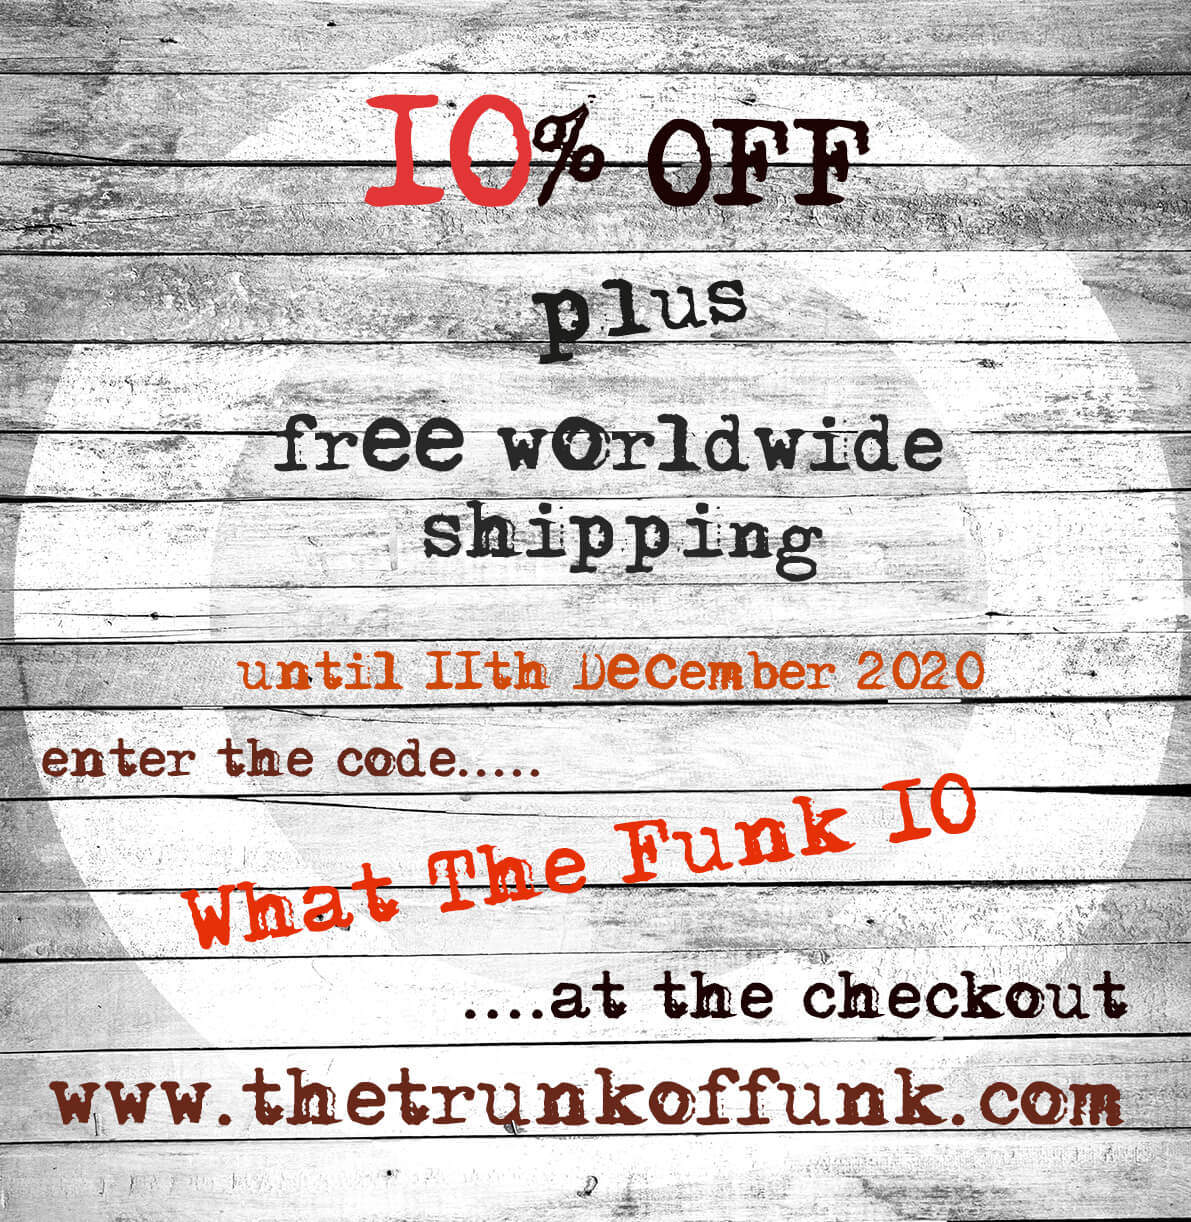 10% off until 11 Dec 20 The Trunk of Funk 10 small